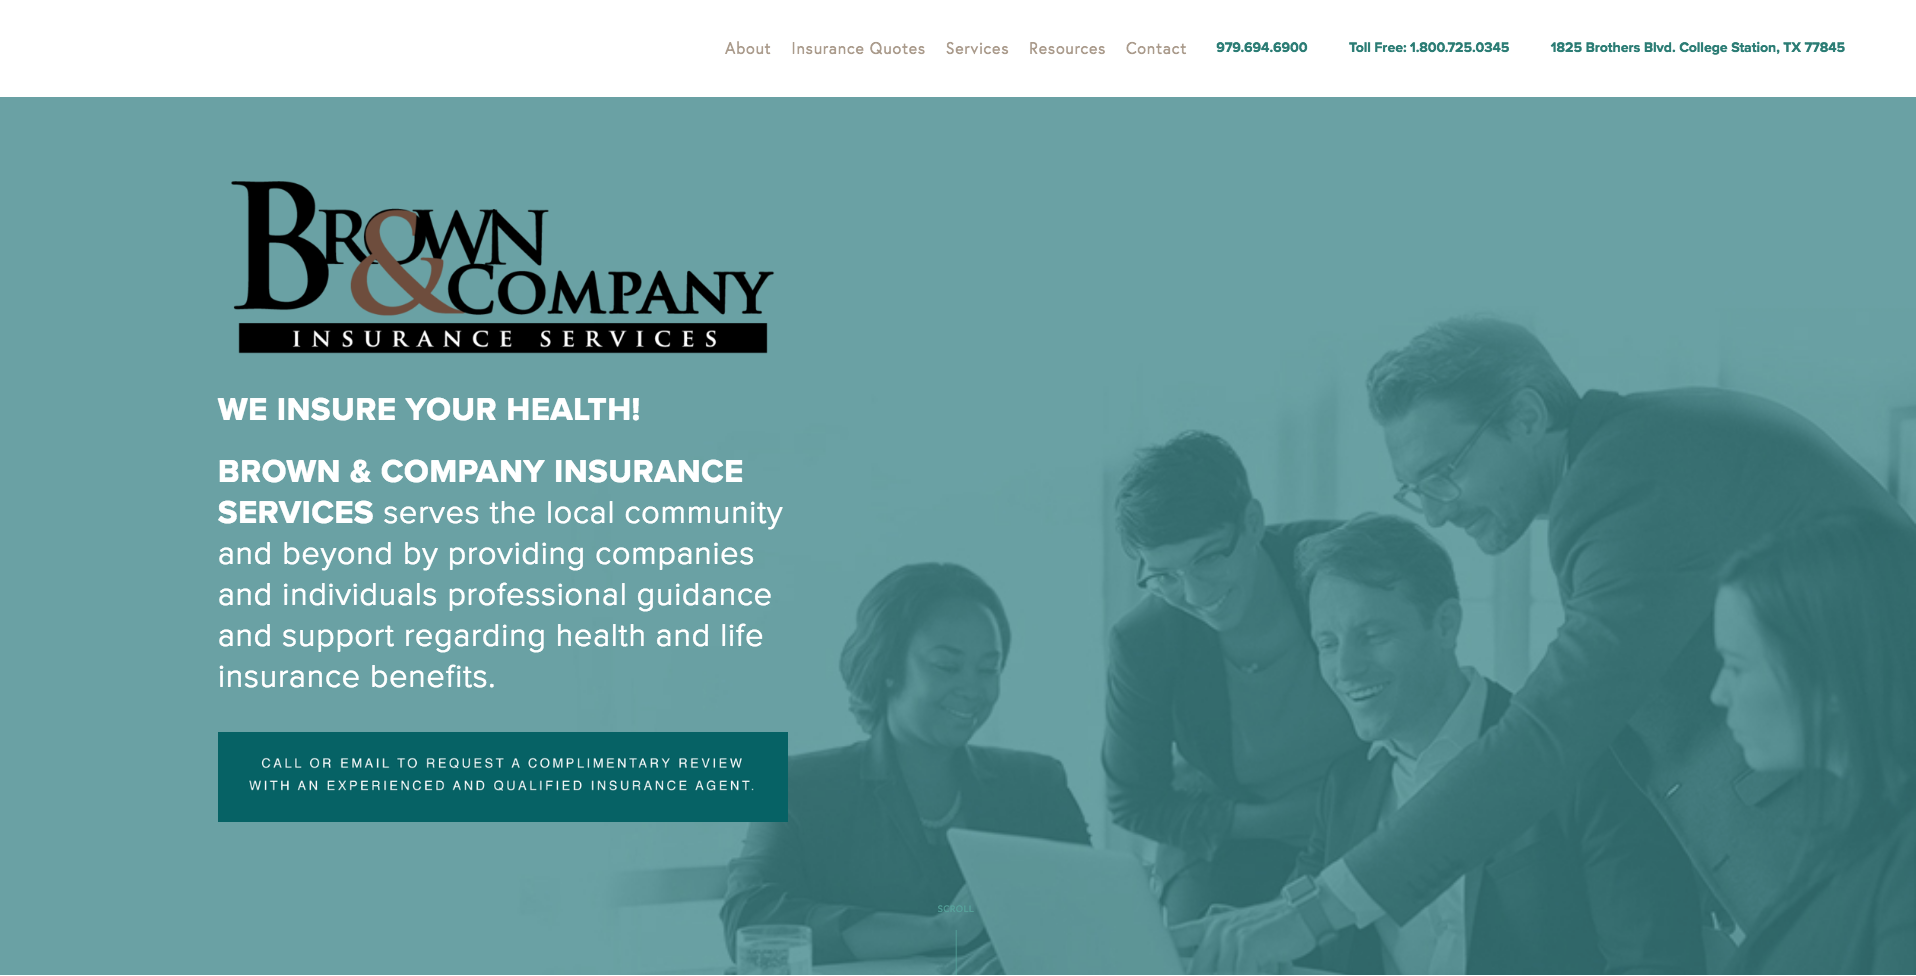 brown&company website